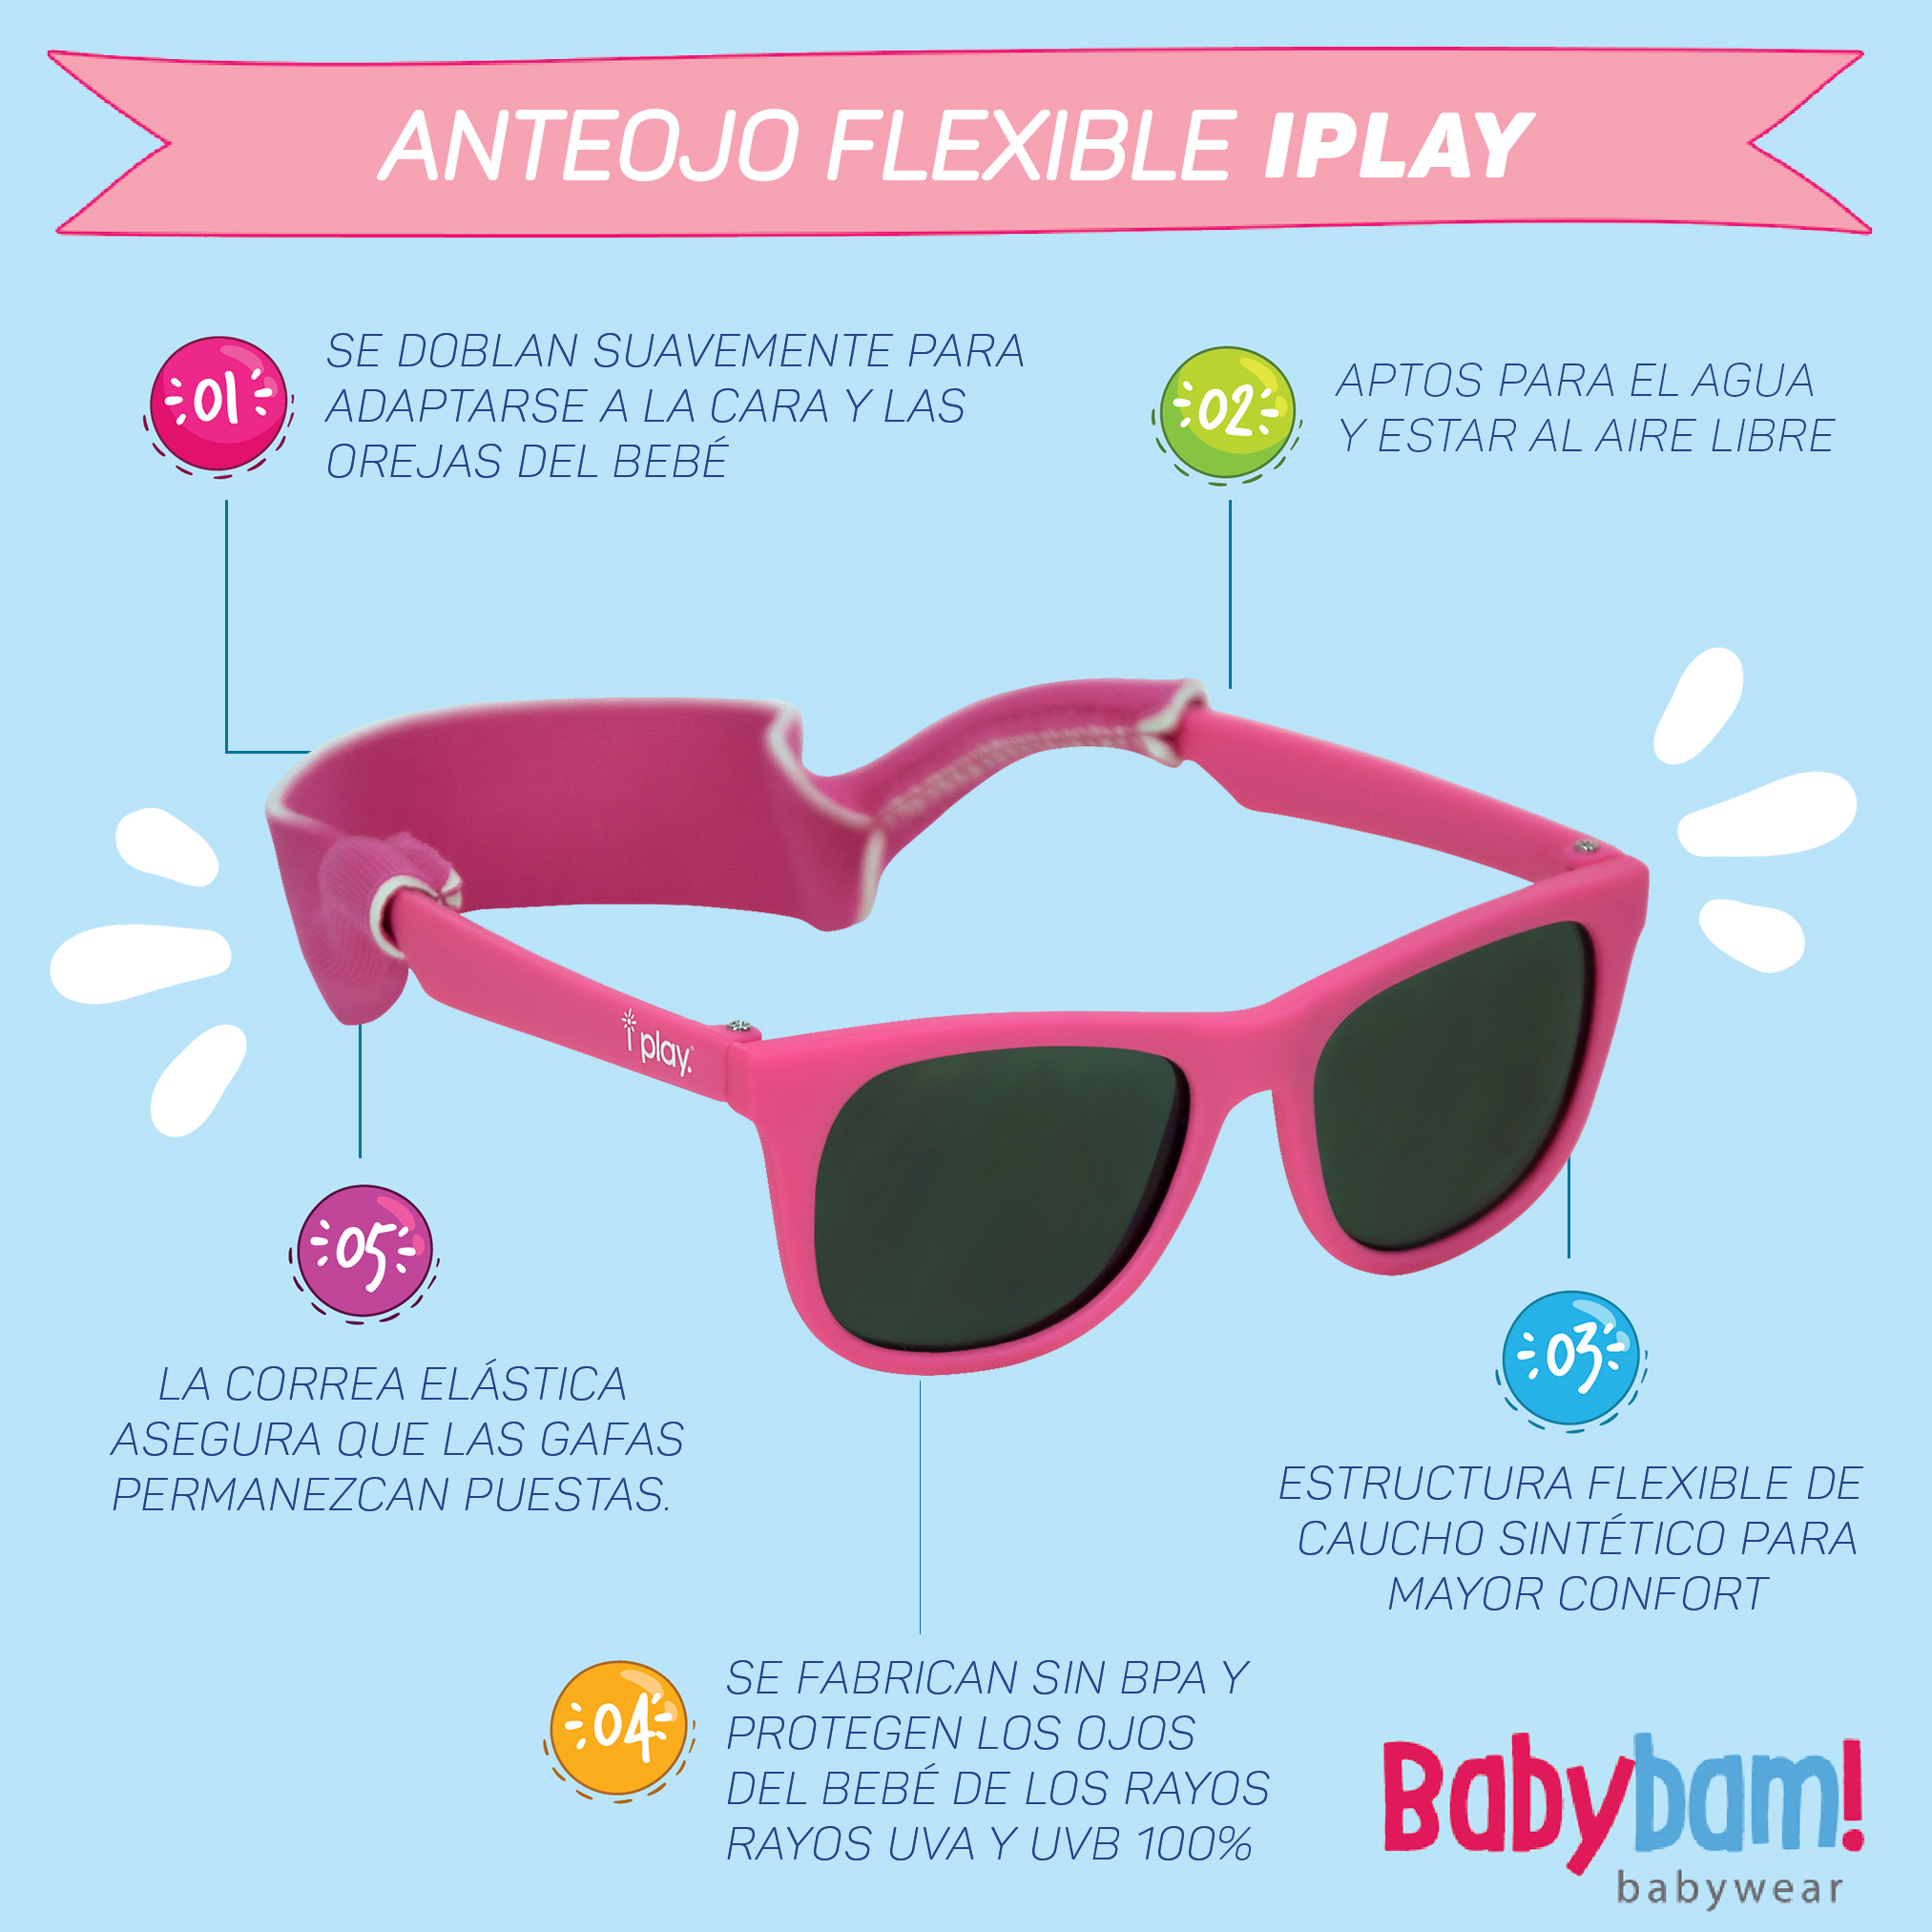 ef9ca7736cd ANTEOJO FLEXIBLE IPLAY ROSA - Comprar en Babybam